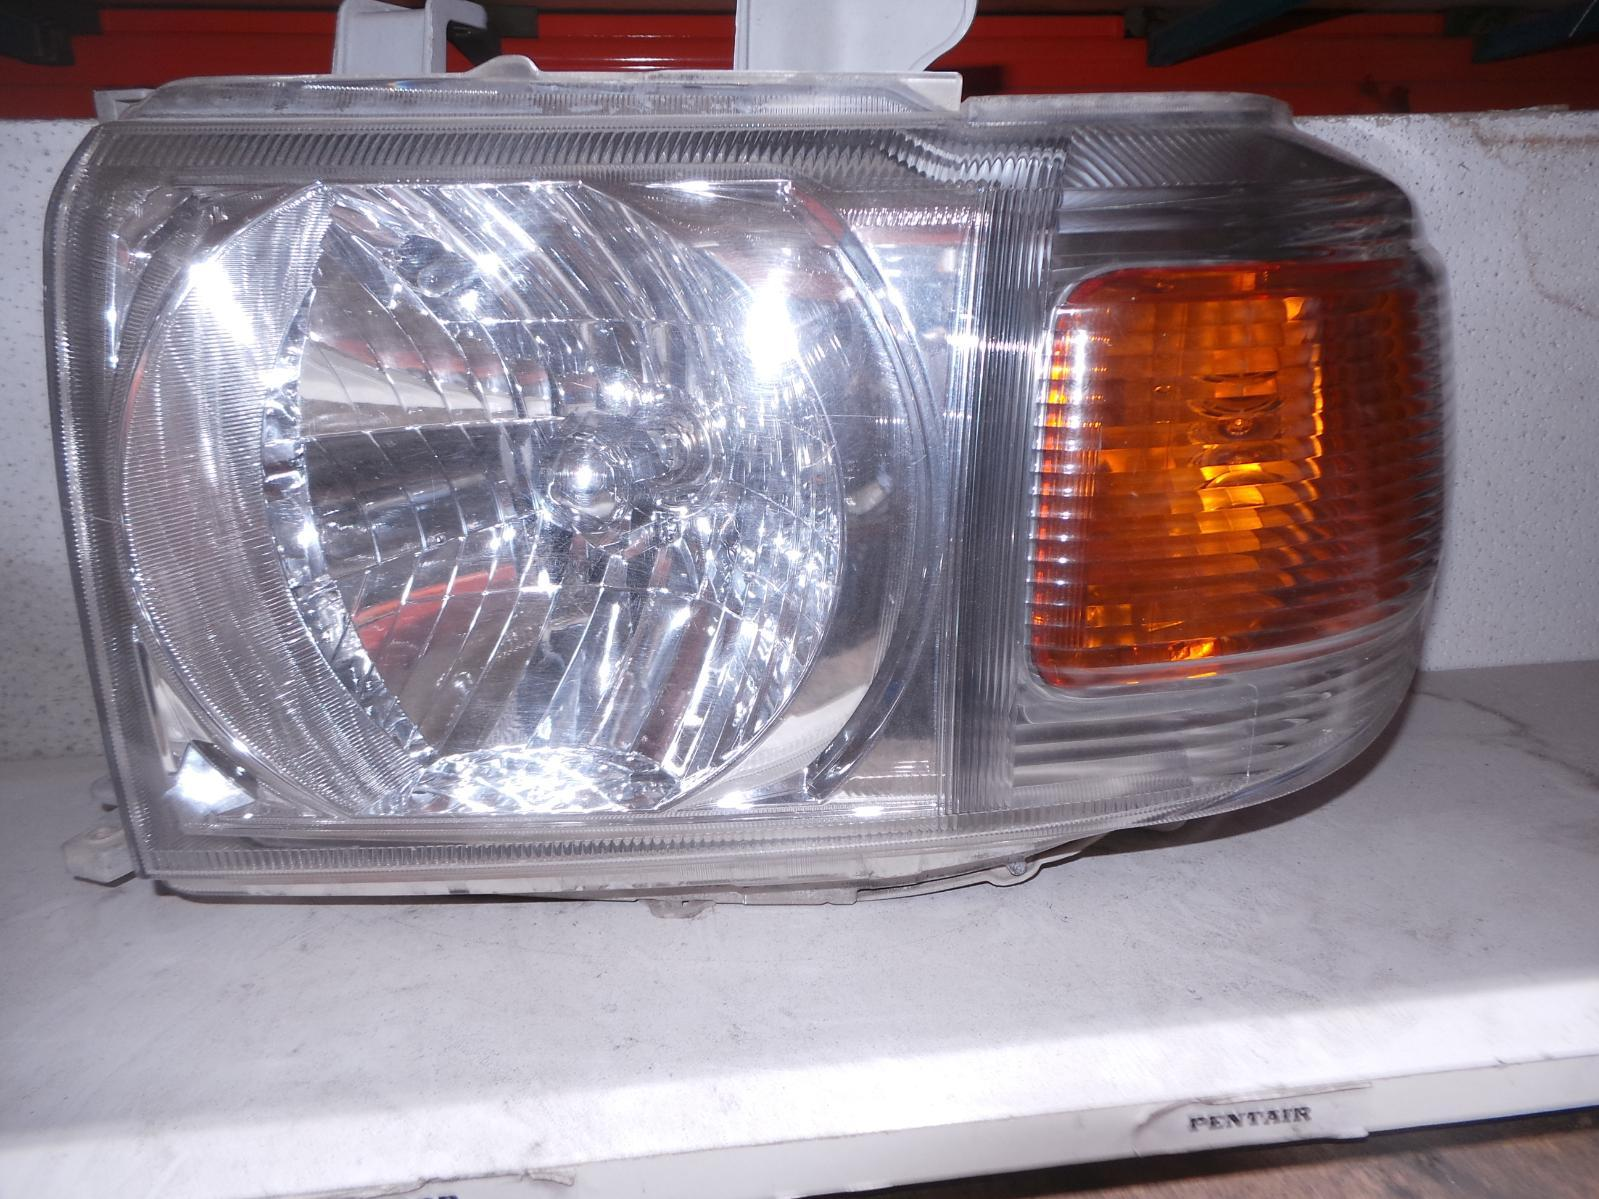 TOYOTA LANDCRUISER, Left Headlamp, 76/78/79 SERIES (UPDATE), HALOGEN TYPE, 03/07-